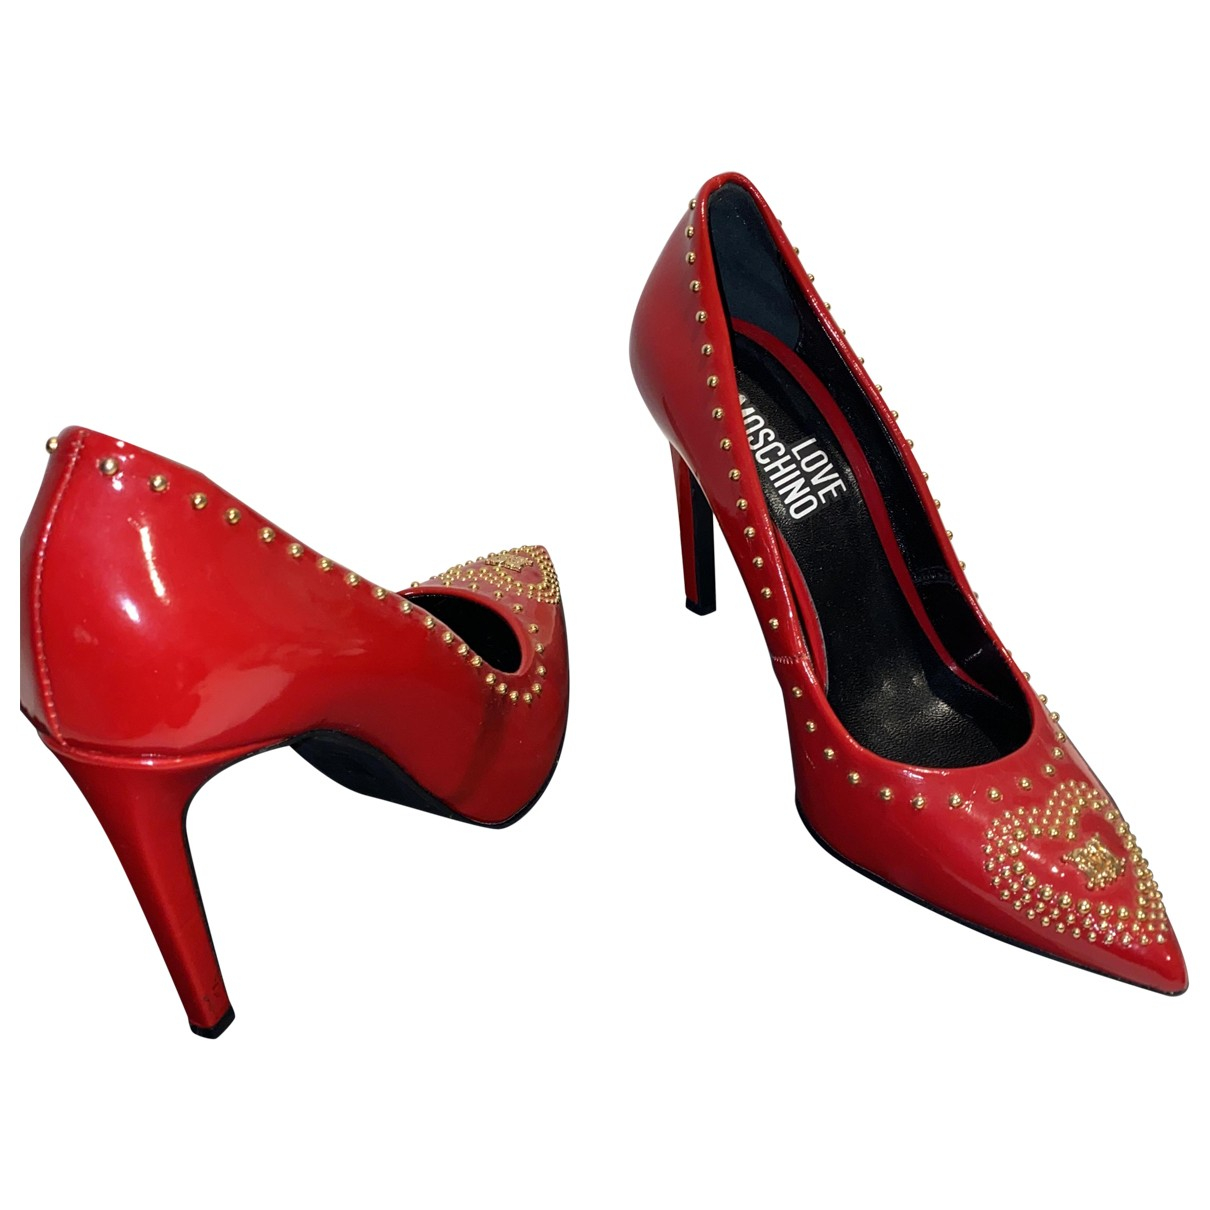 Moschino Love N Red Patent leather Heels for Women 39.5 EU